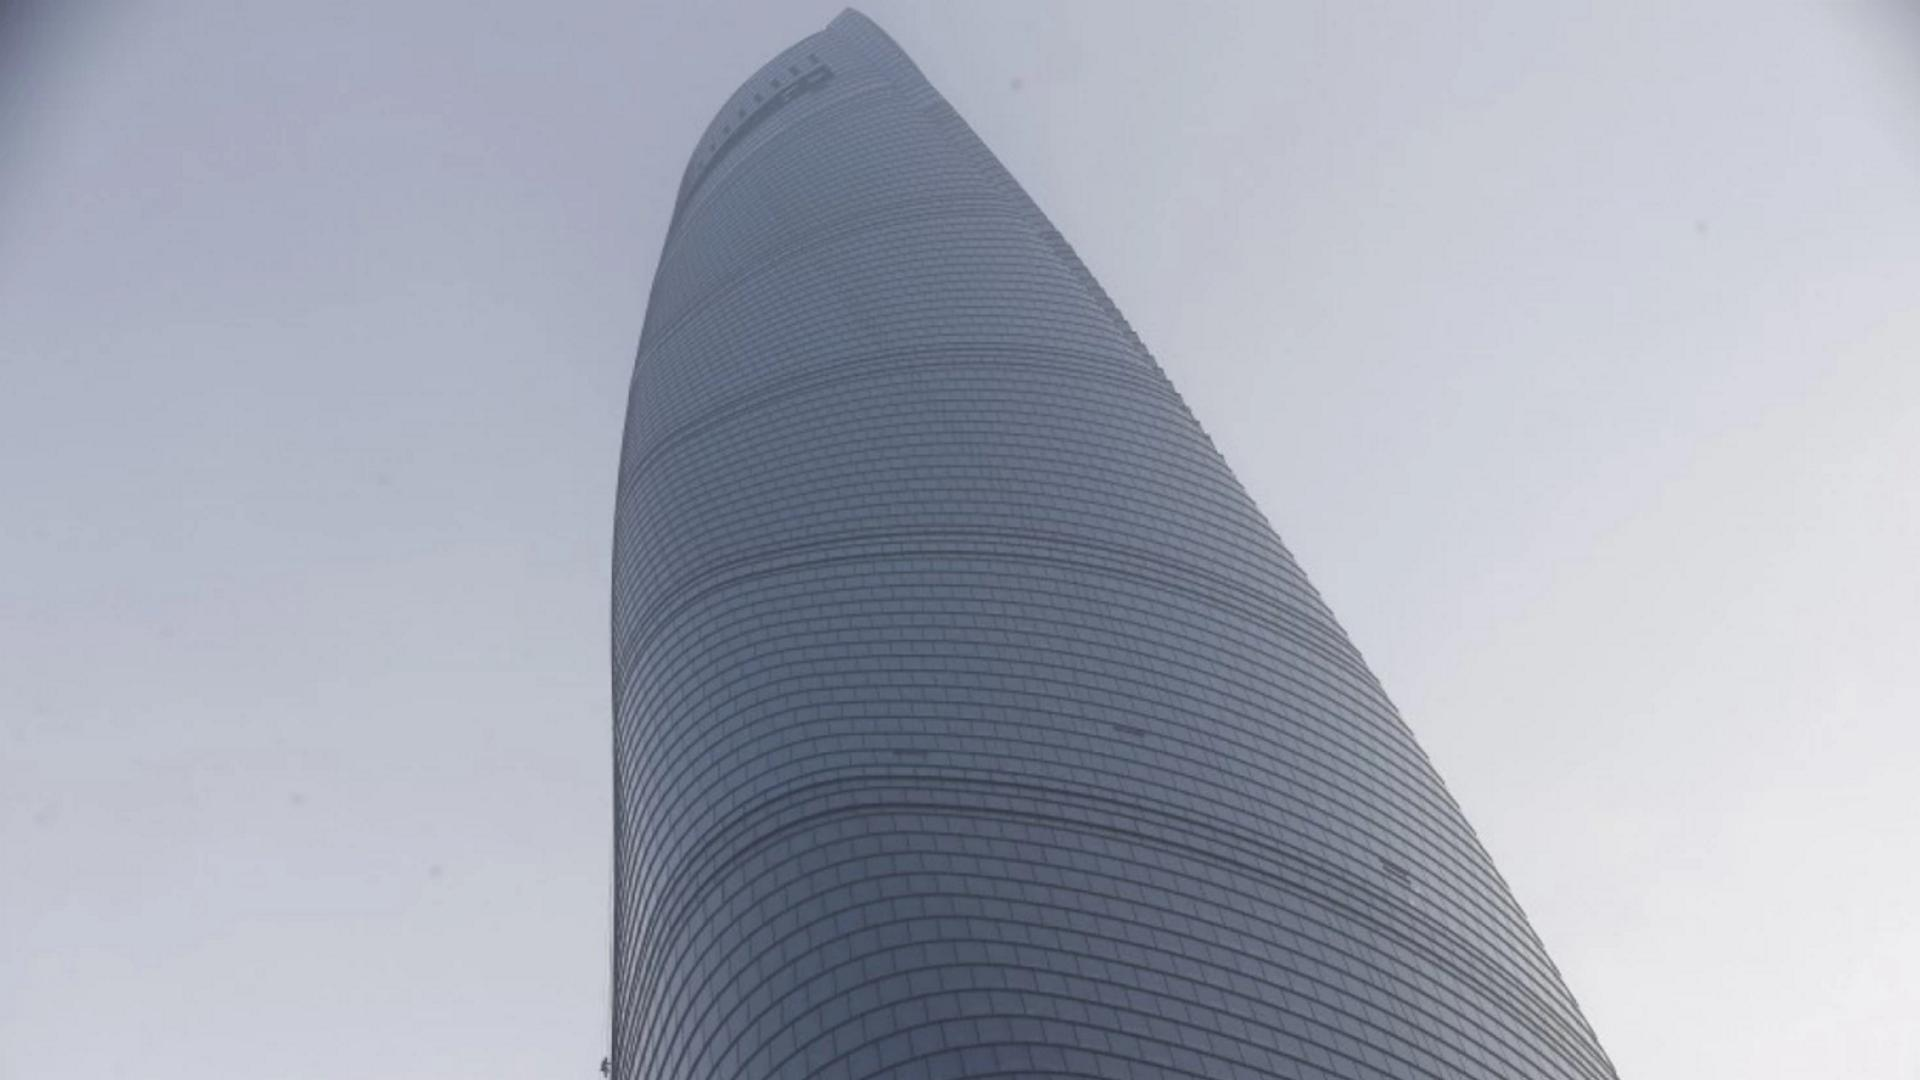 The world's tallest buildings may come with a curse